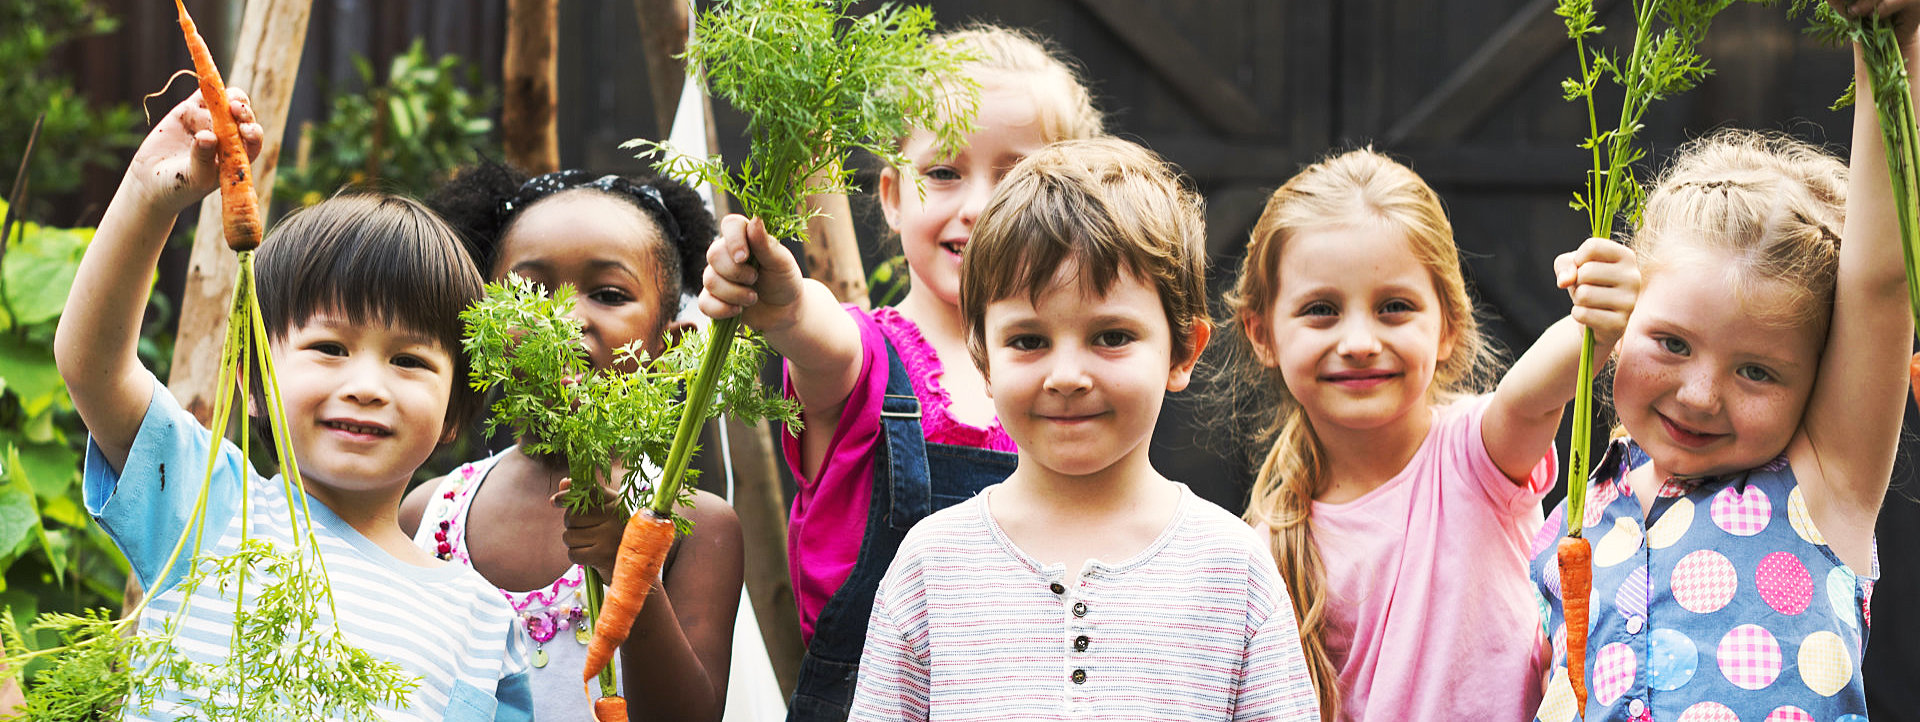 group of smiling children holding a carrots